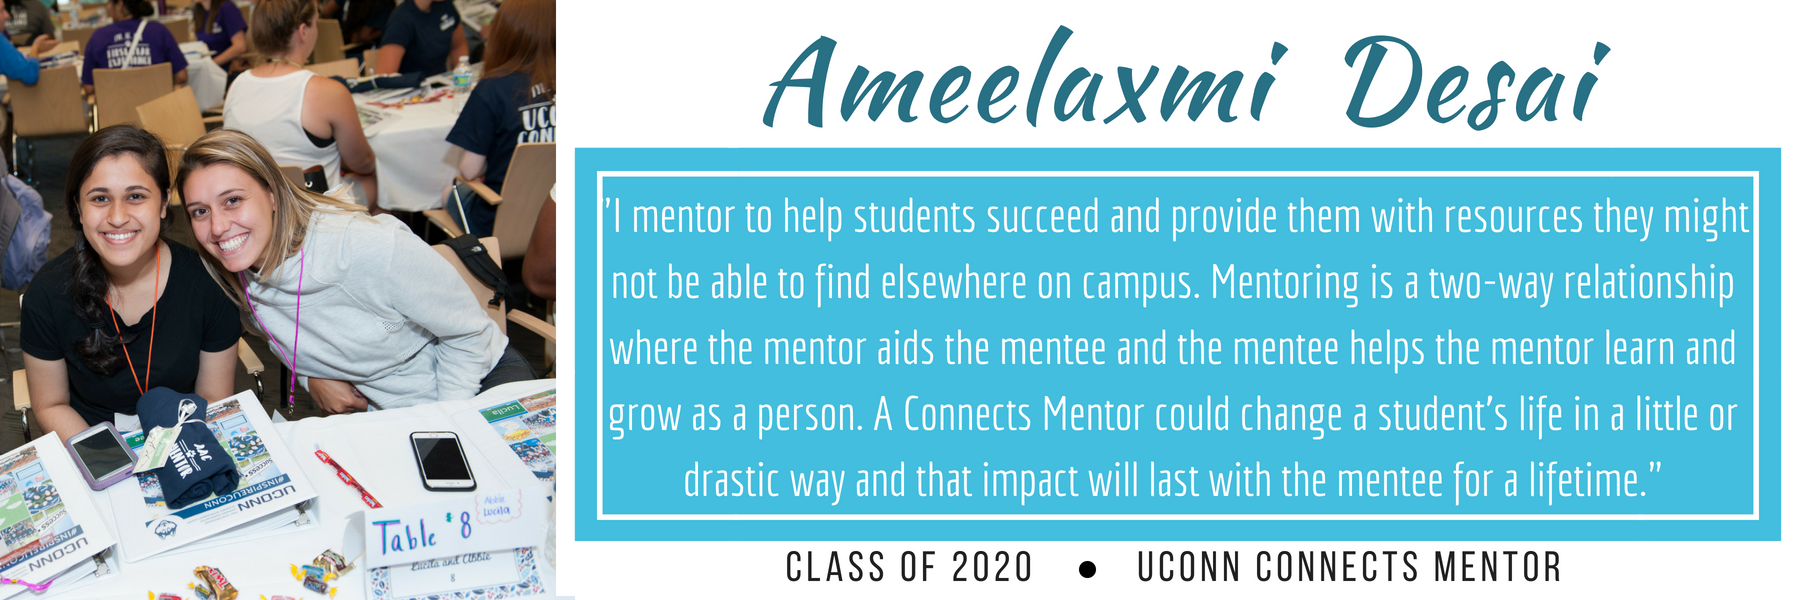 Amee Desai why I mentor